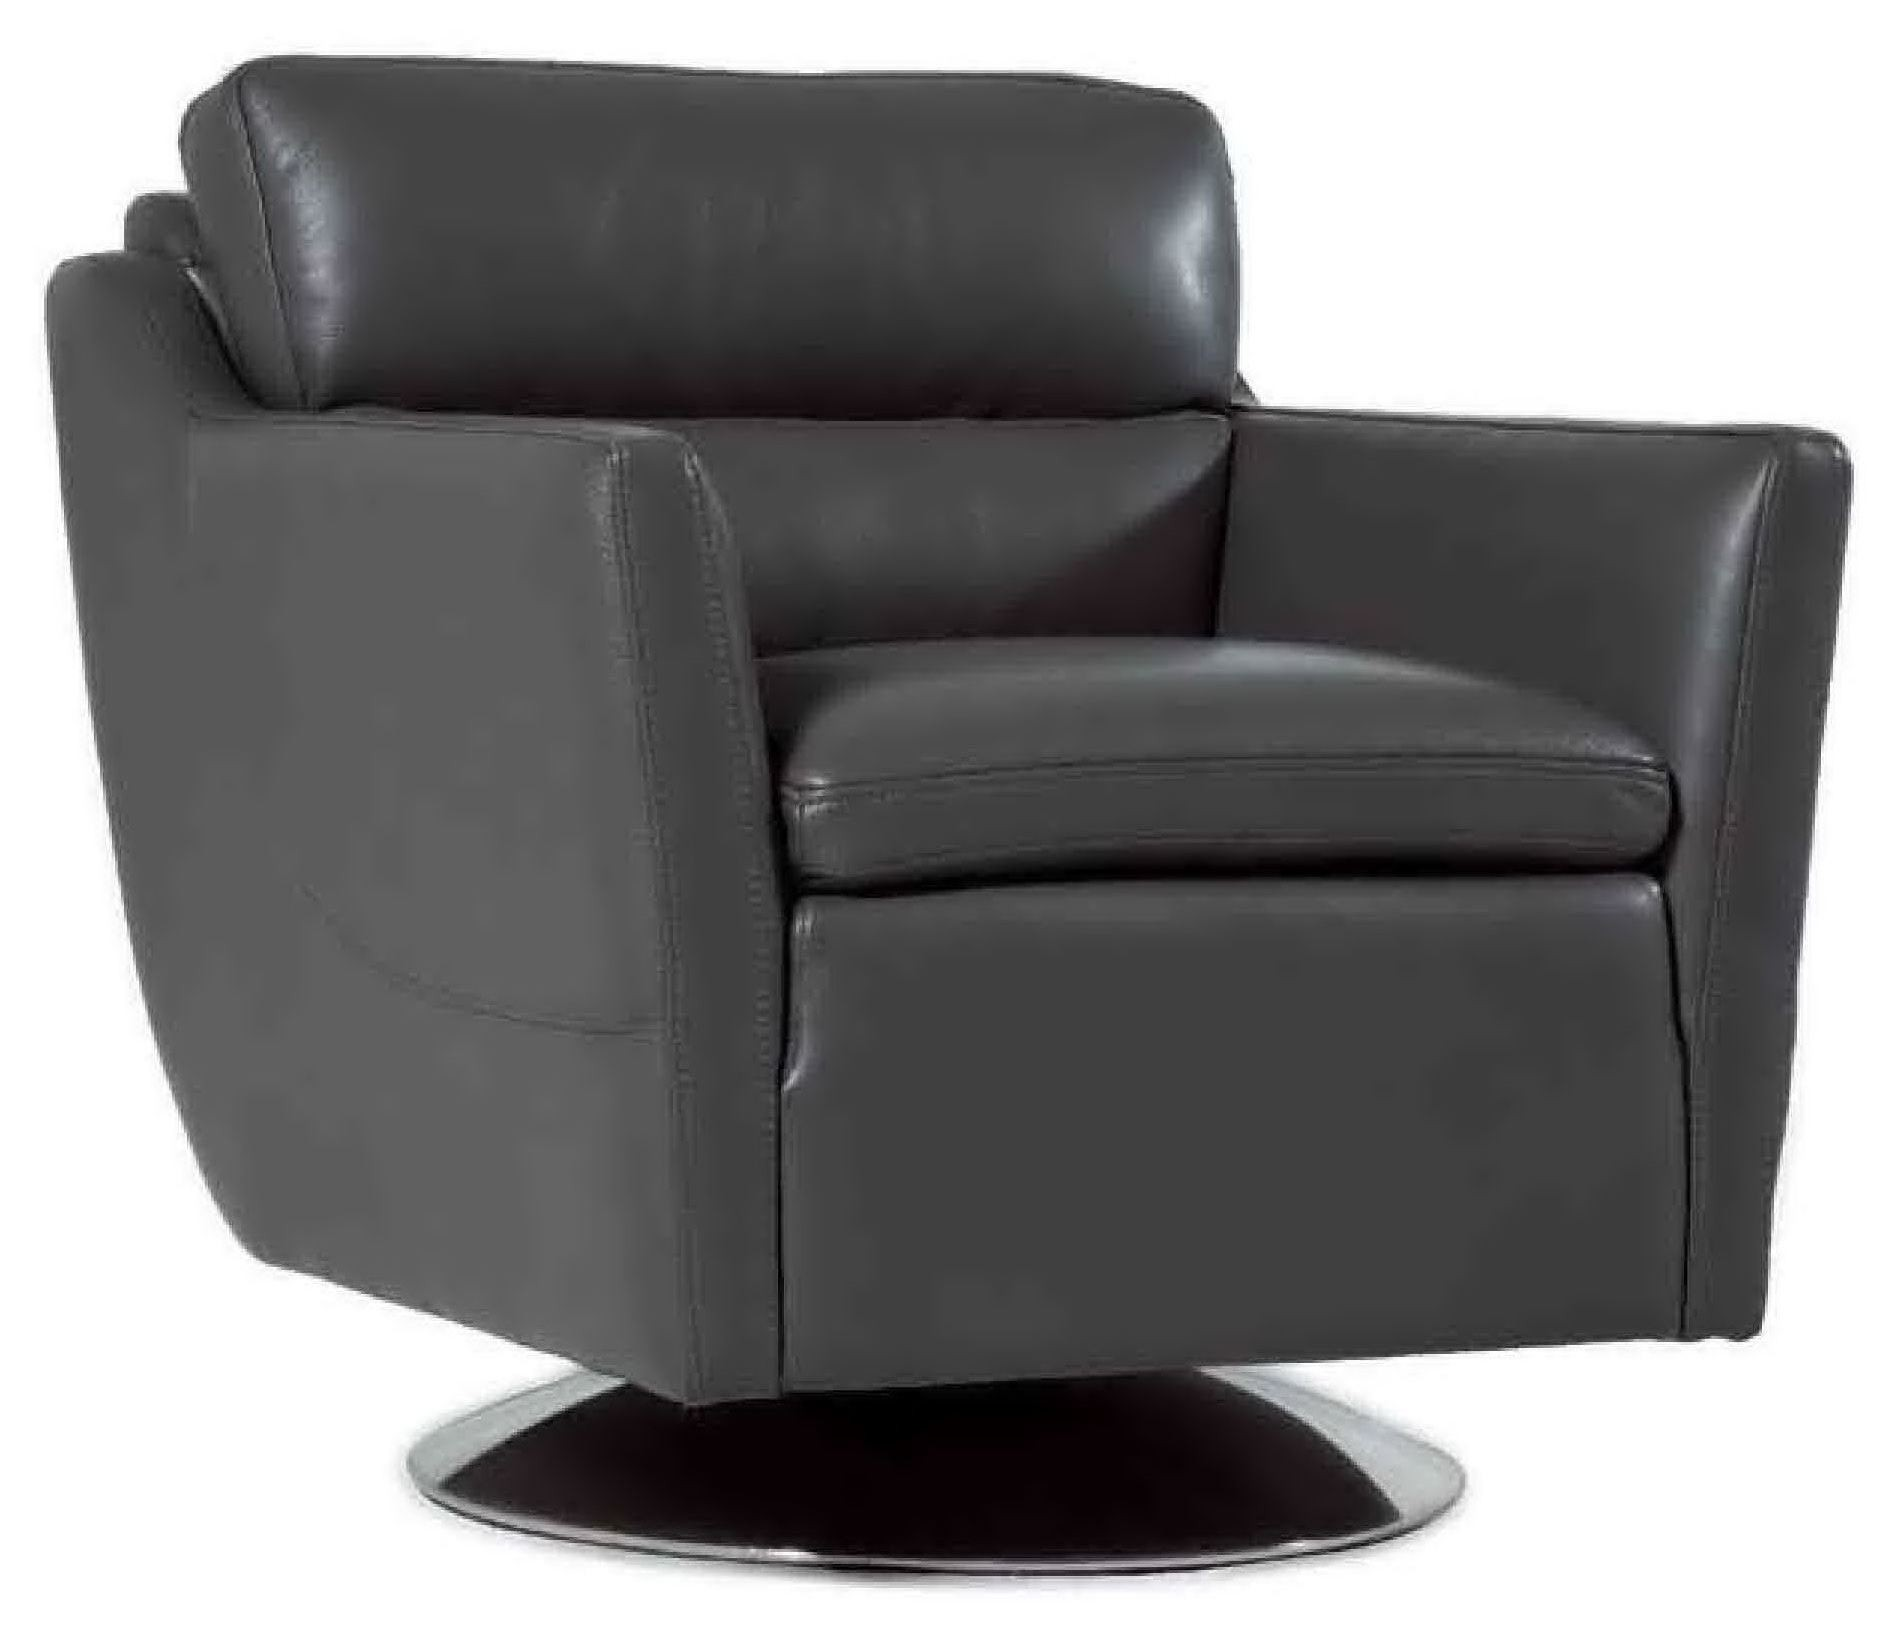 clio grain cool grey leather chair from moroni coleman furniture. Black Bedroom Furniture Sets. Home Design Ideas